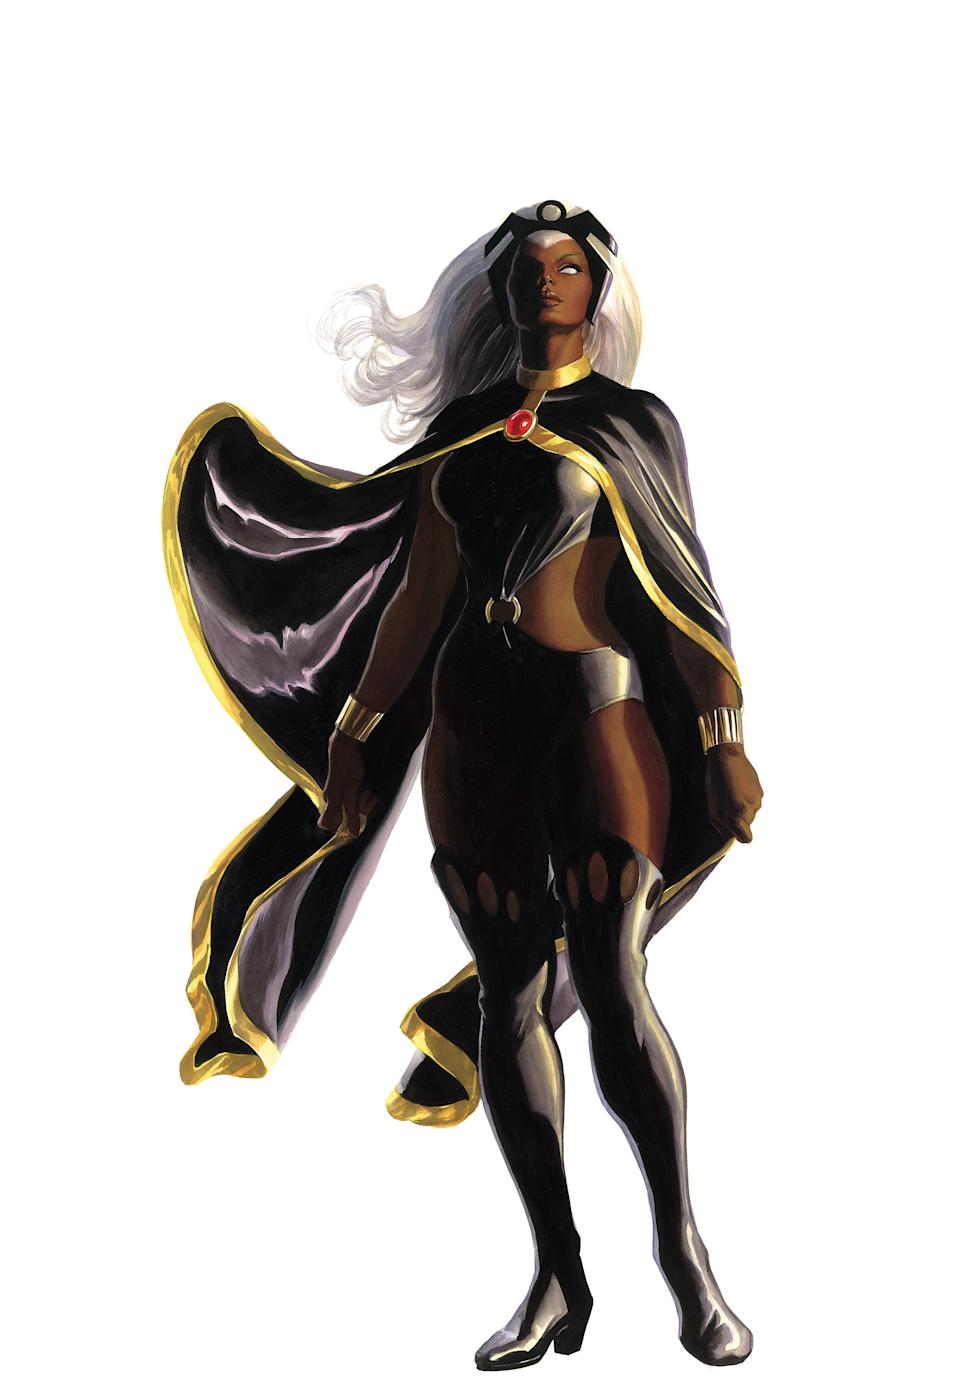 Storm as drawn by Alex Ross in the